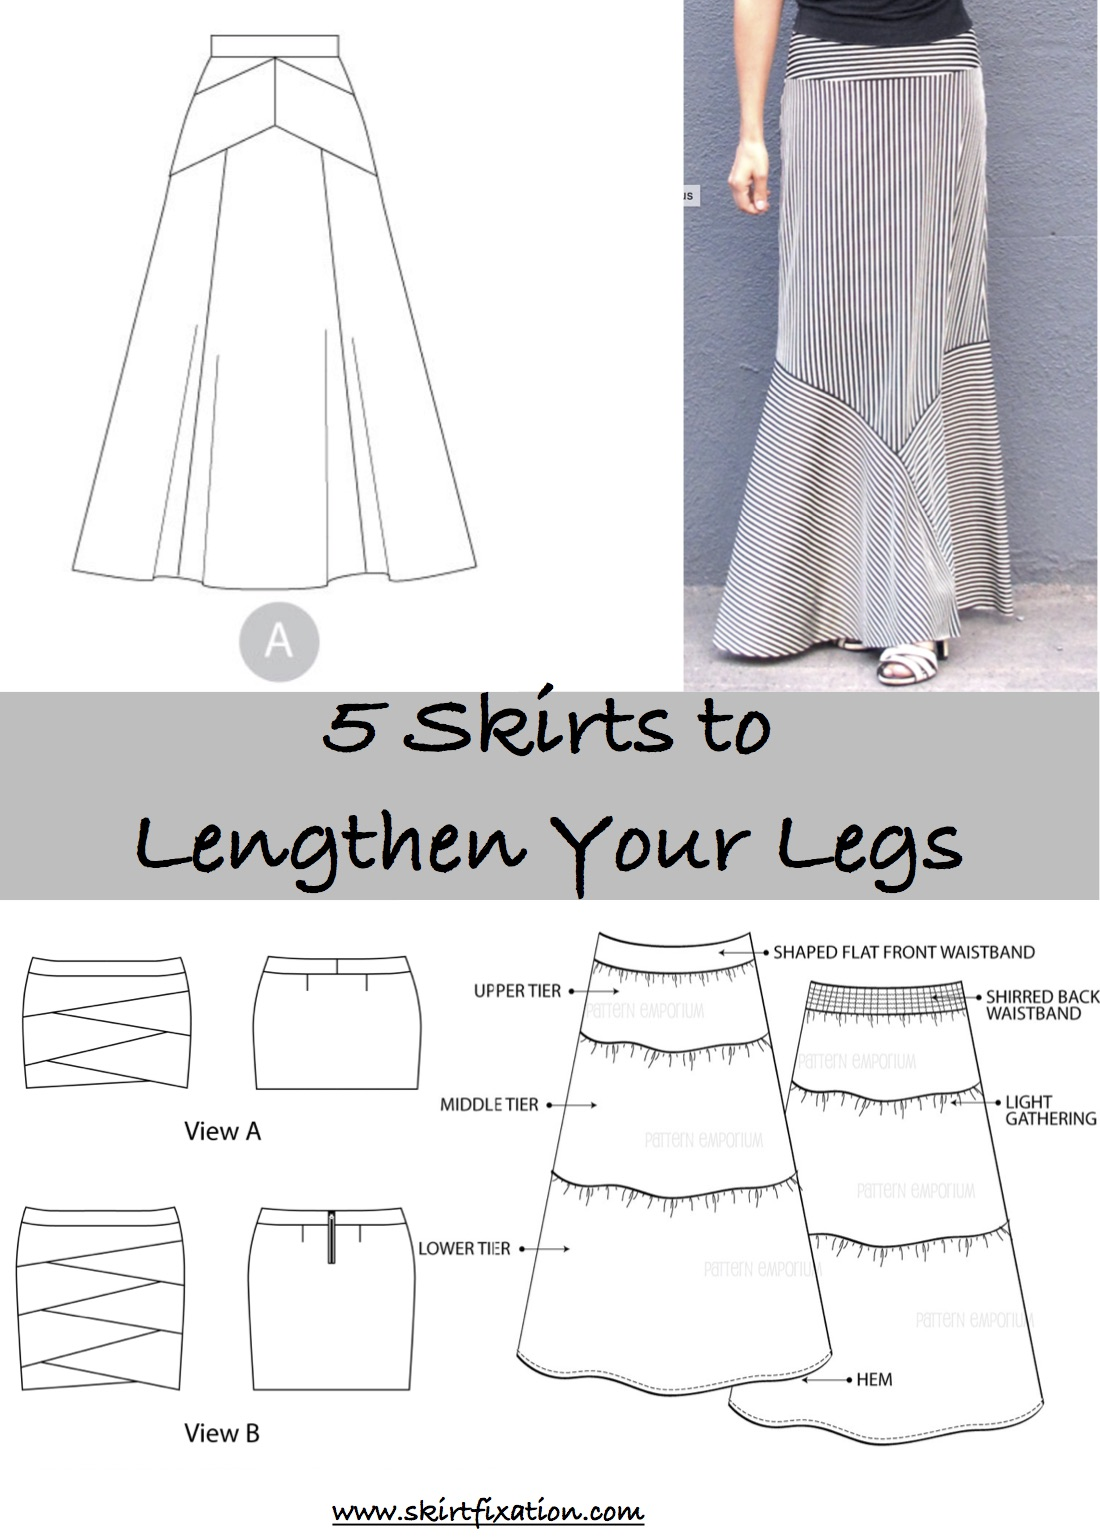 5 skirt patterns to lengthen your legs!